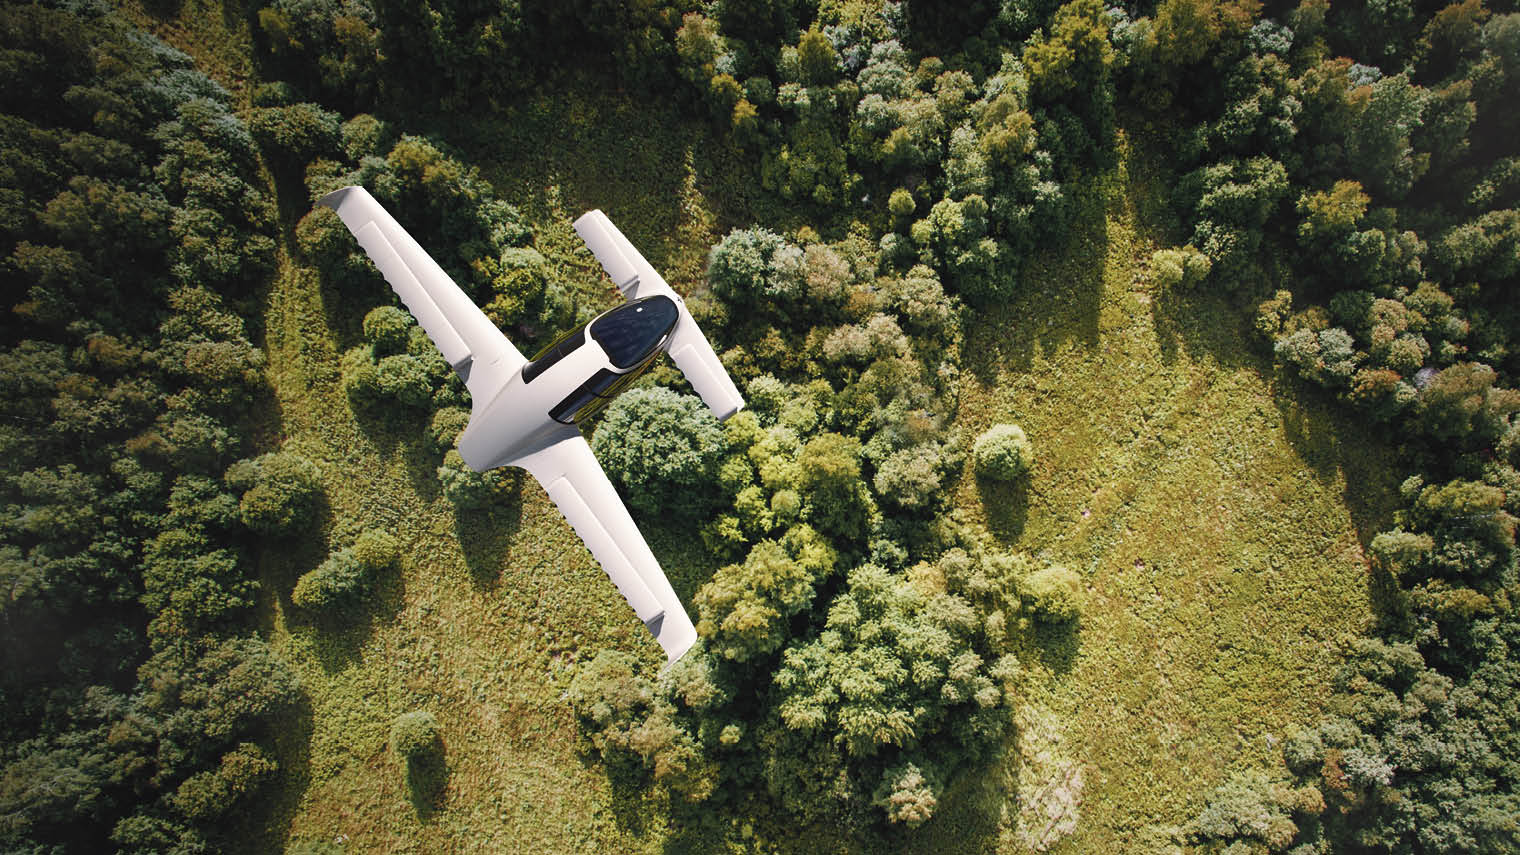 Bird's eye view of Lilium Jet five-seater plane over grass and trees